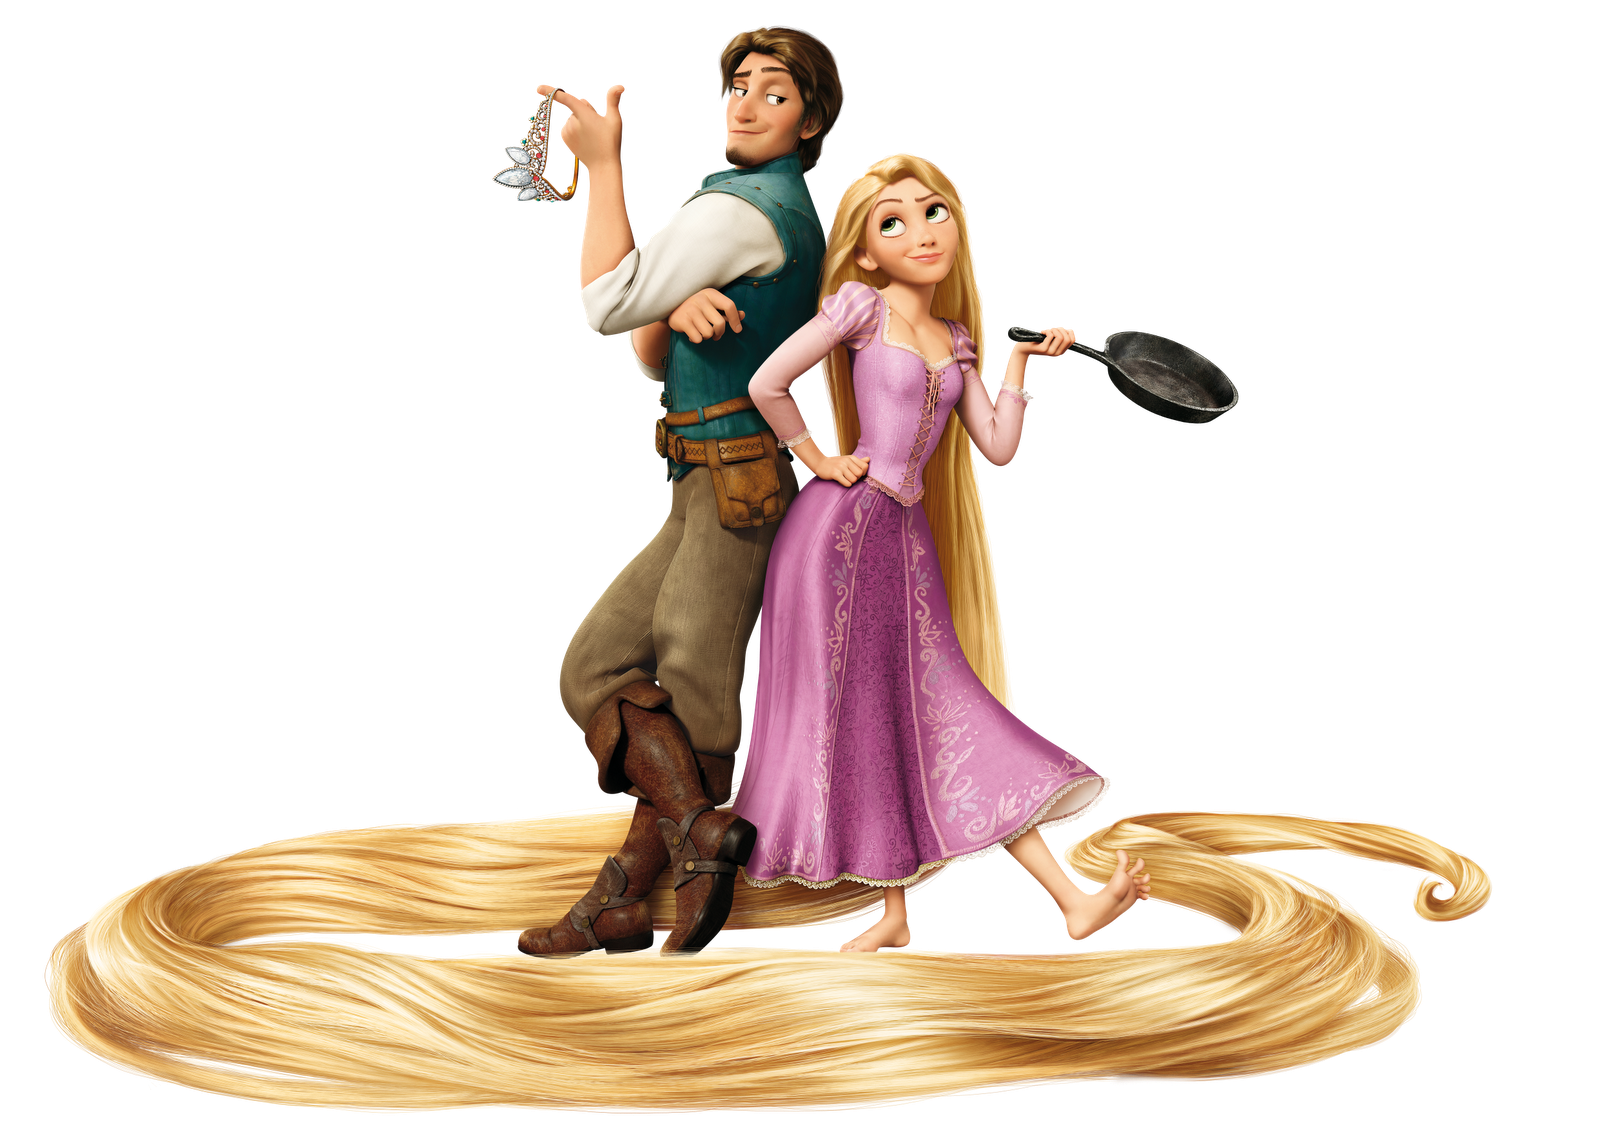 Tangled Clipart For Desktop.